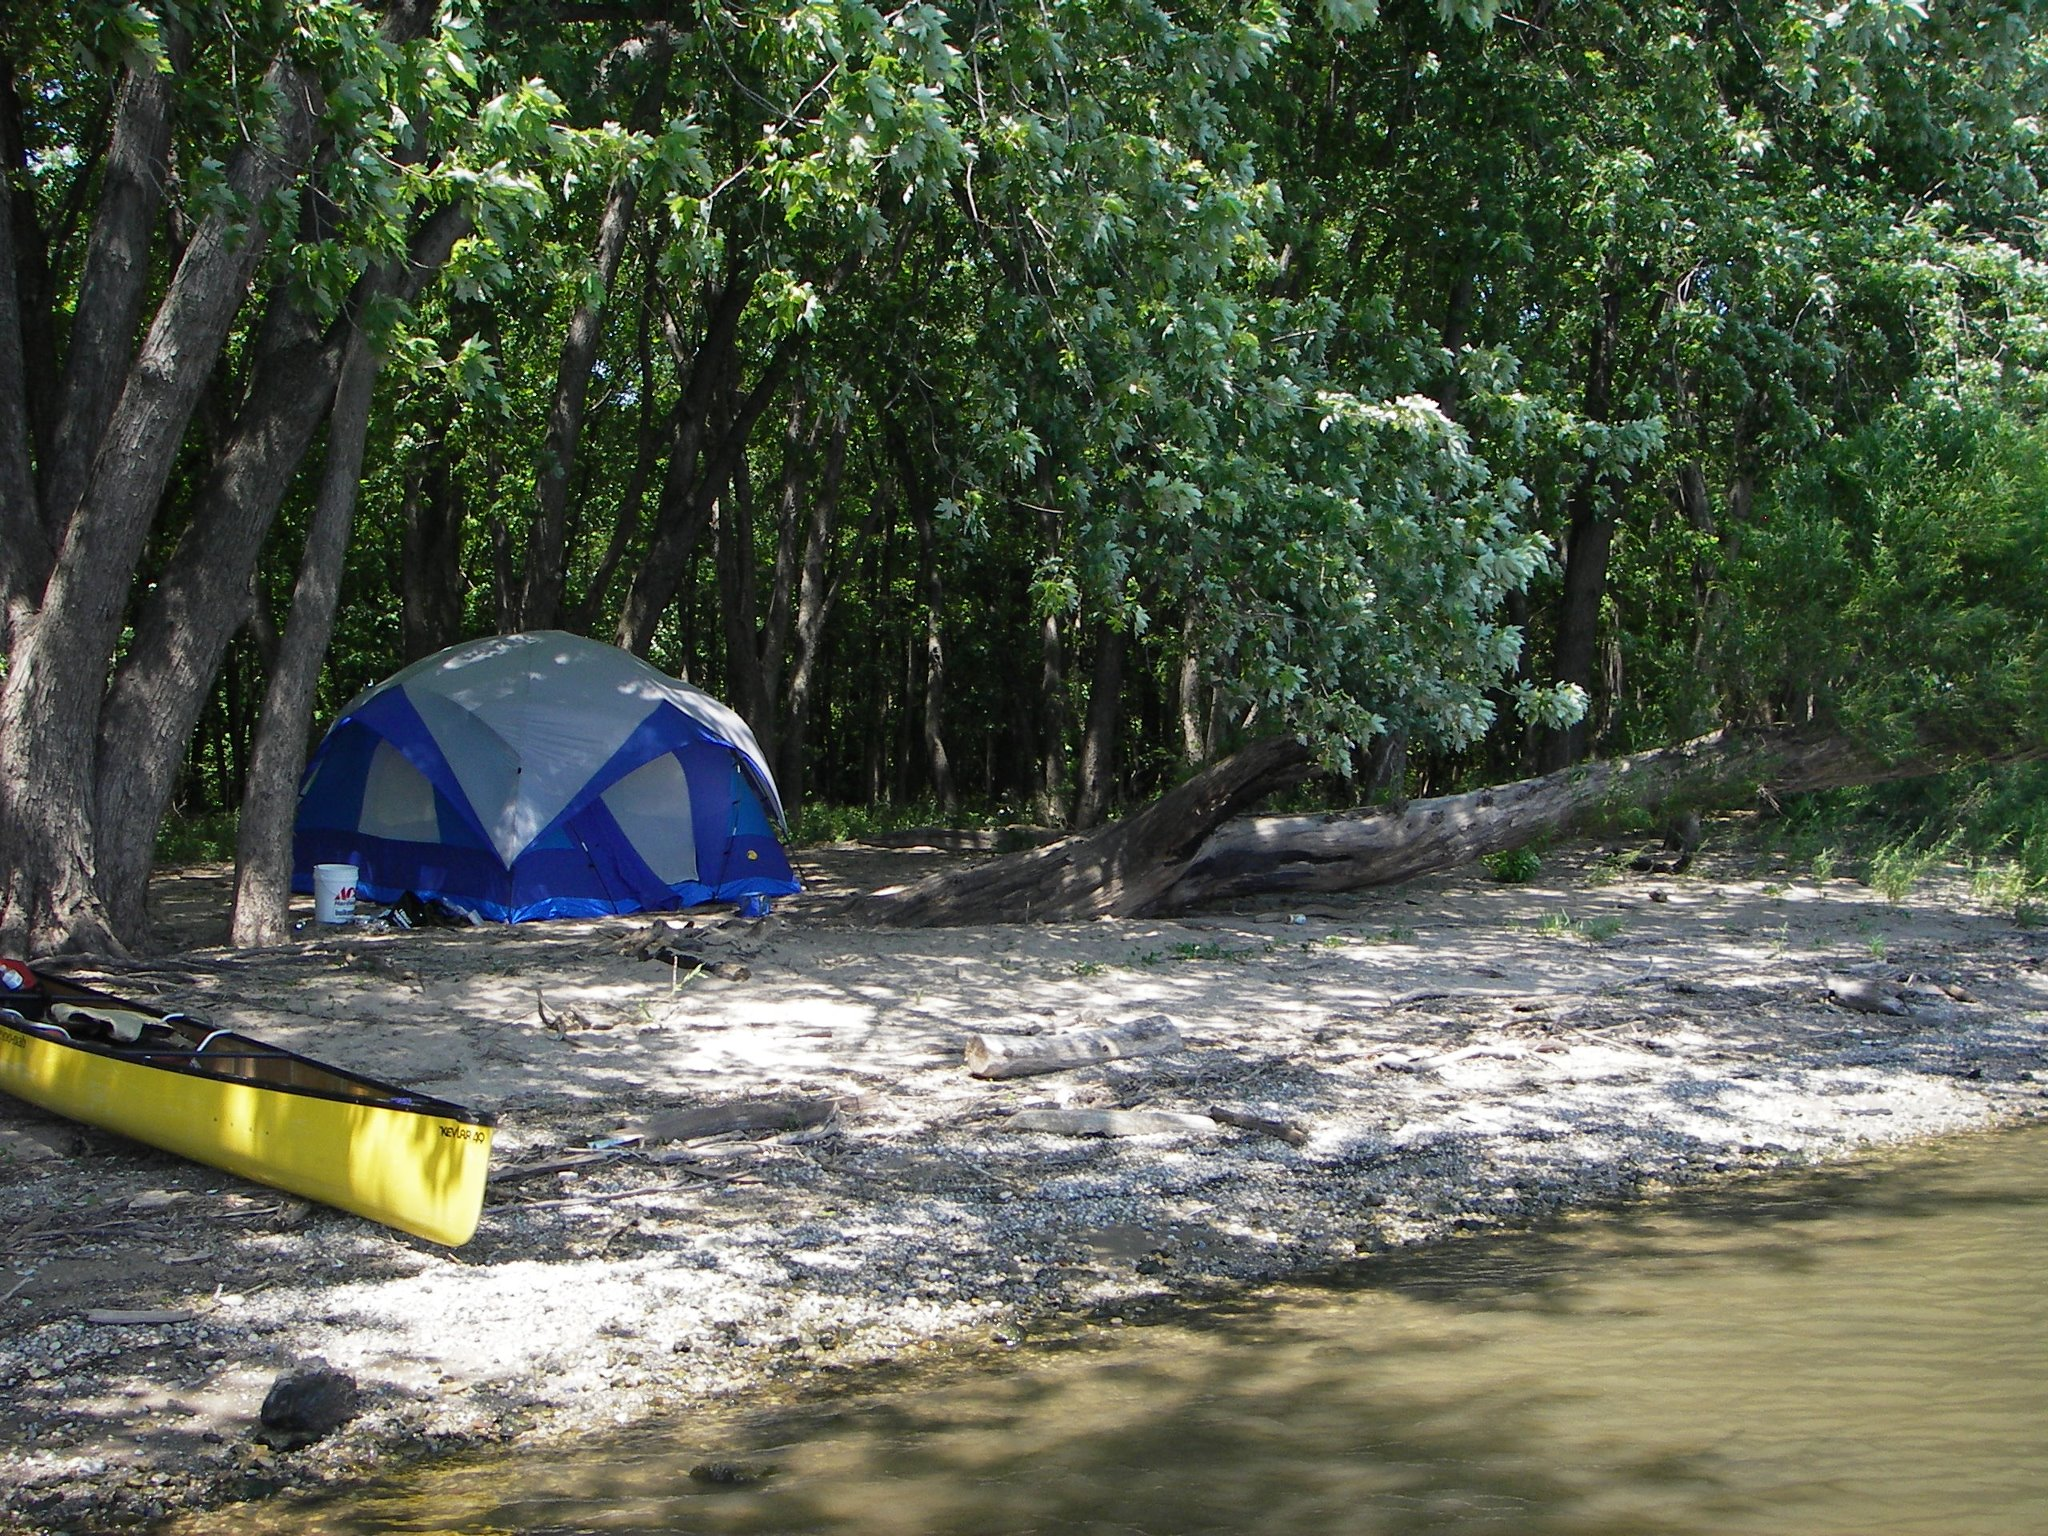 The Best Spot For Beach Camping In Illinois